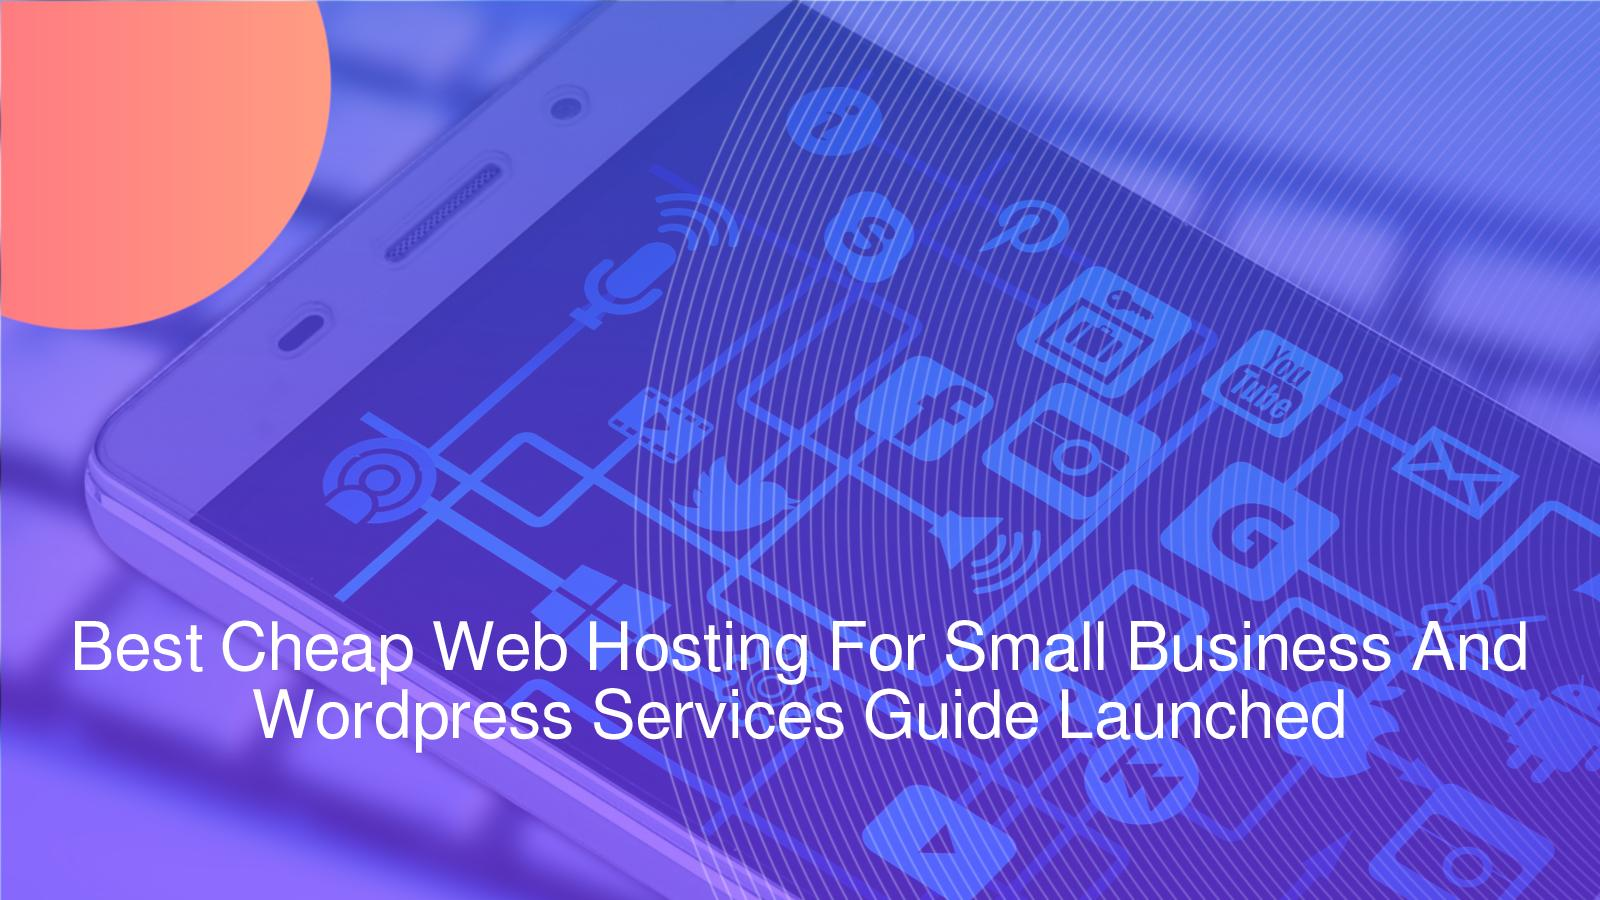 Calameo Best Cheap Web Hosting For Small Business And Wordpress Services Guide Launched